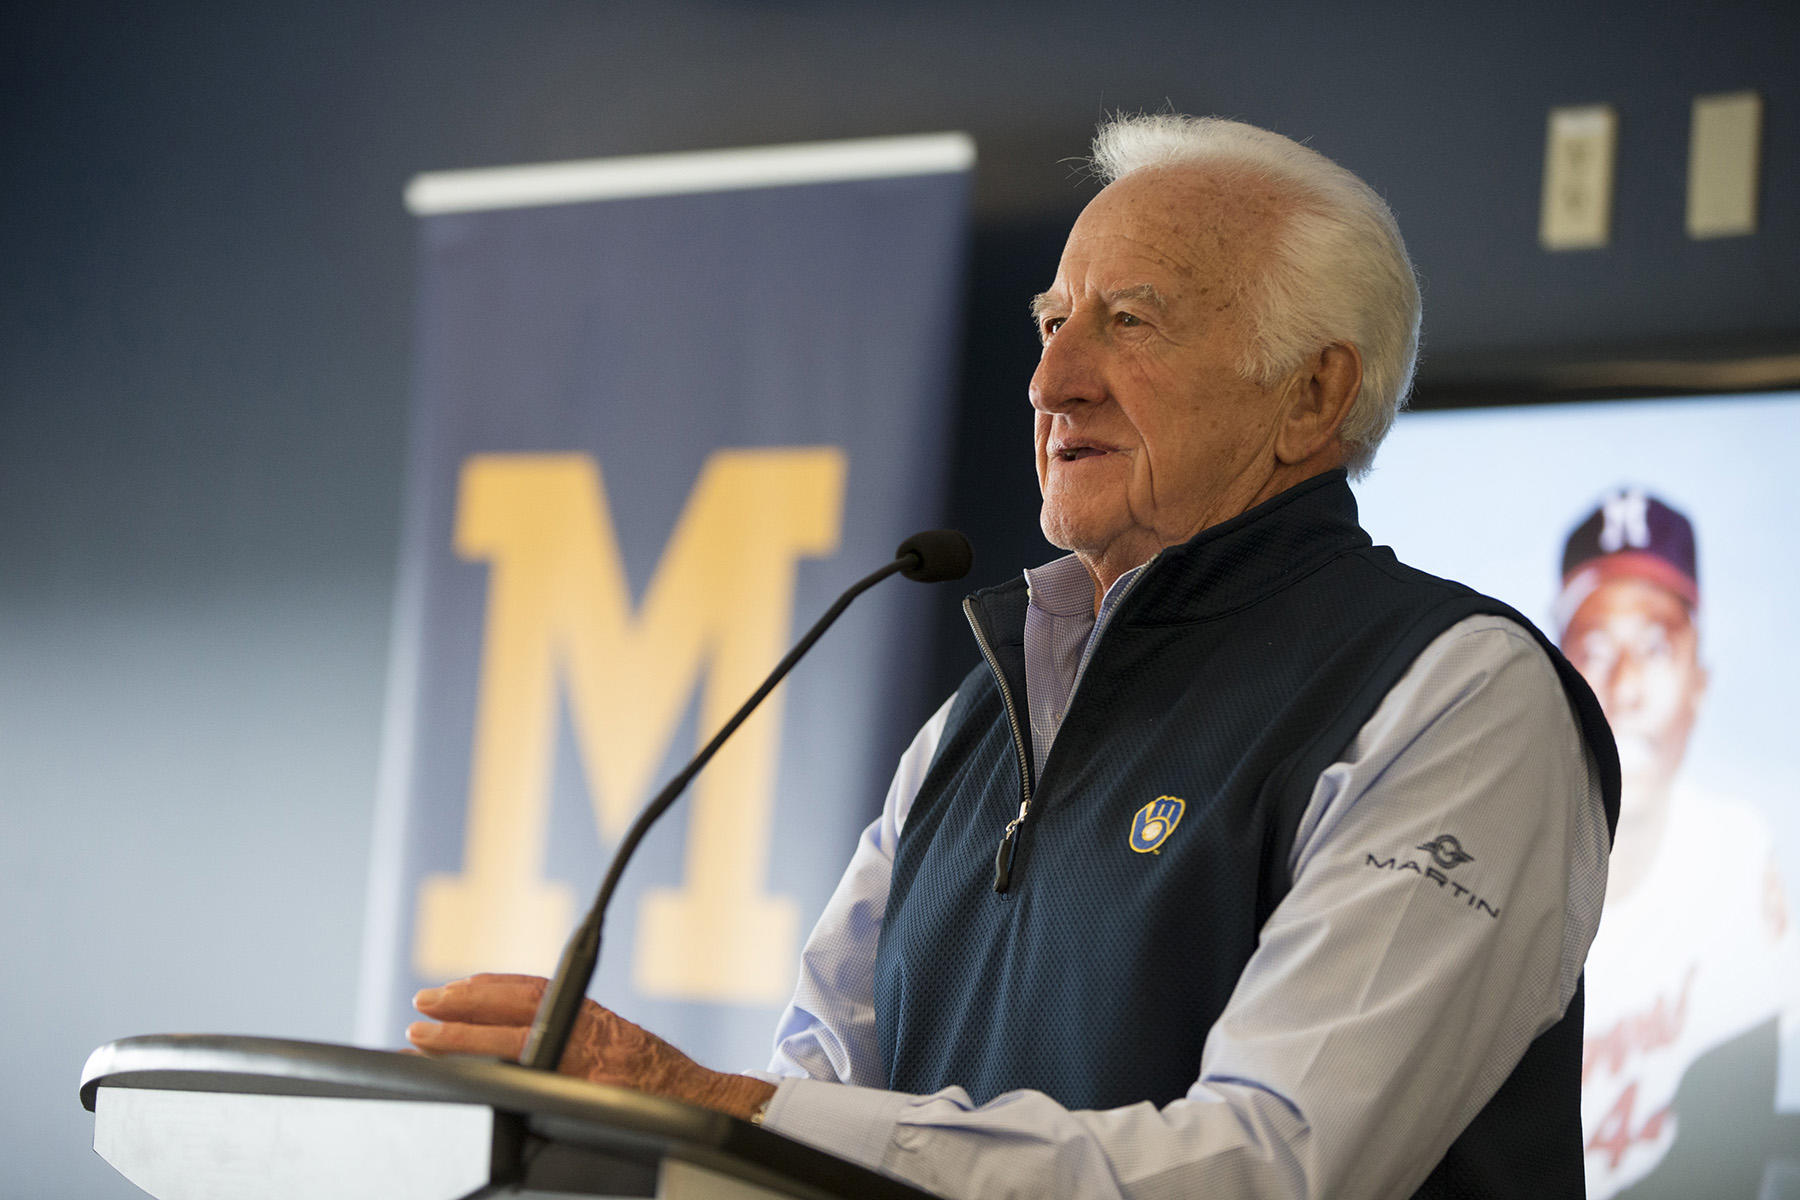 """Bob Uecker gives opening remarks at """"An Evening With Hank Aaron"""" held on September 24th, 2016 at Miller Park. (Scott Paulus/Milwaukee Brewers)"""